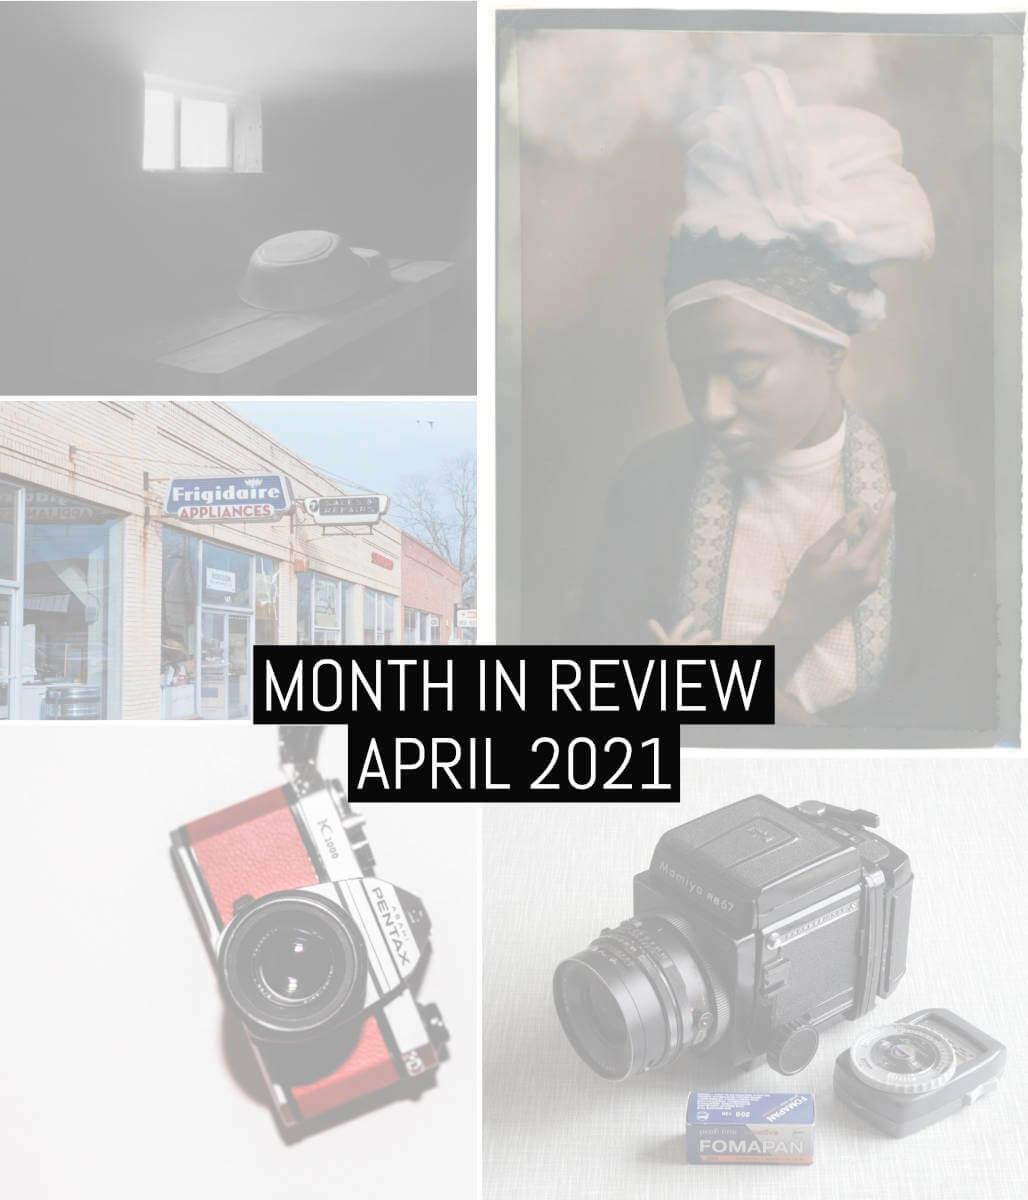 Cover - Month in review - 2021 April